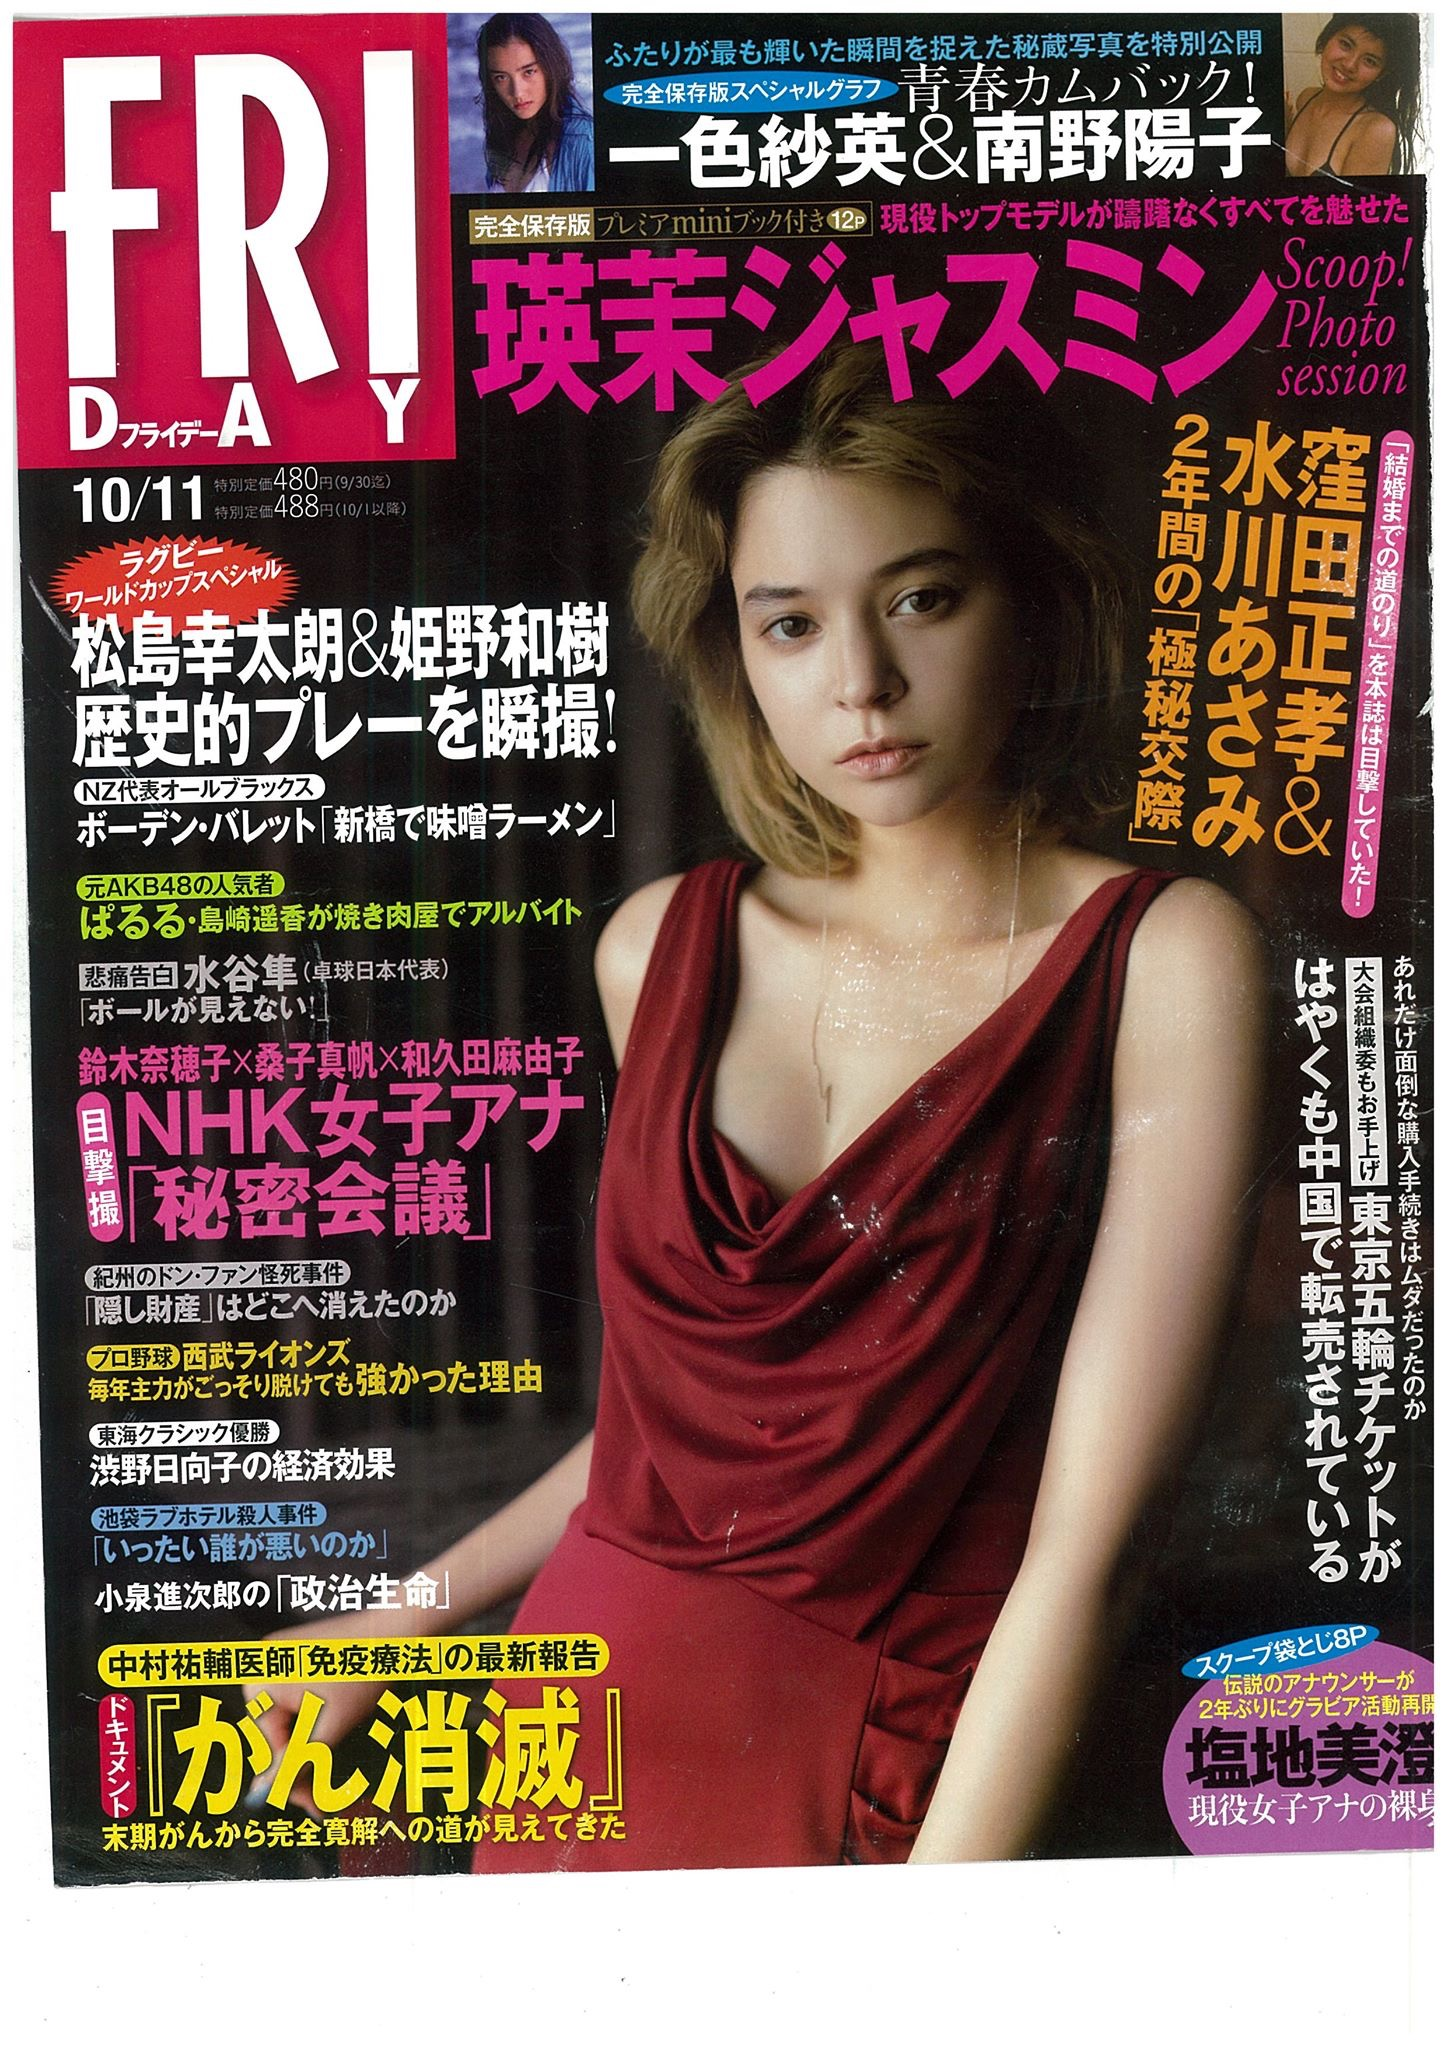 girlsnews